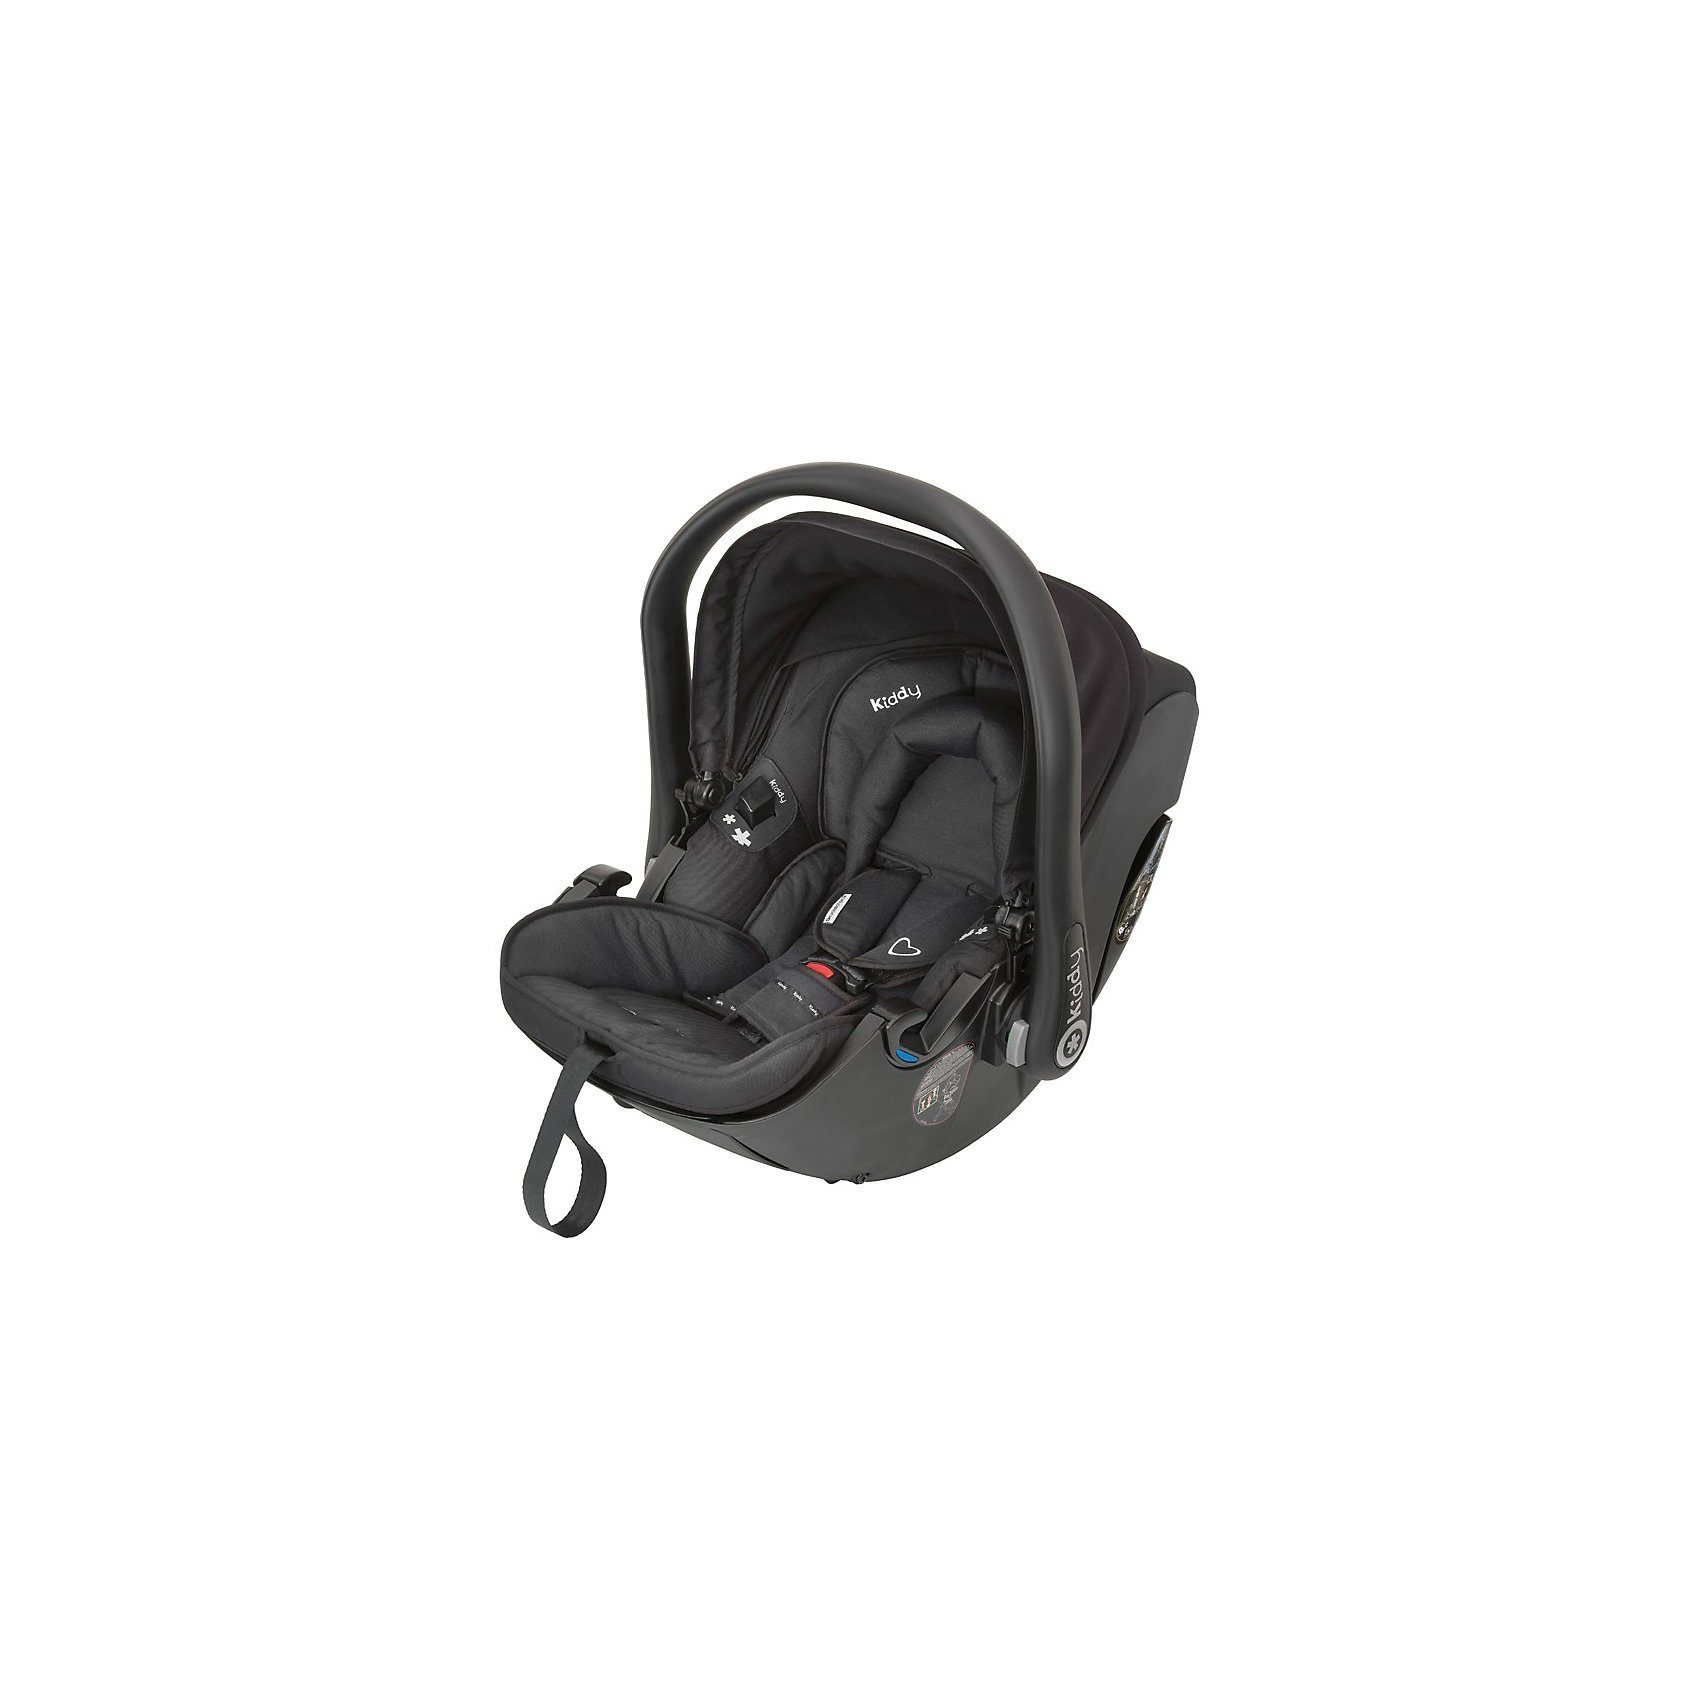 Kiddy Babyschale Evolution Pro 2, Racing Black, 2015